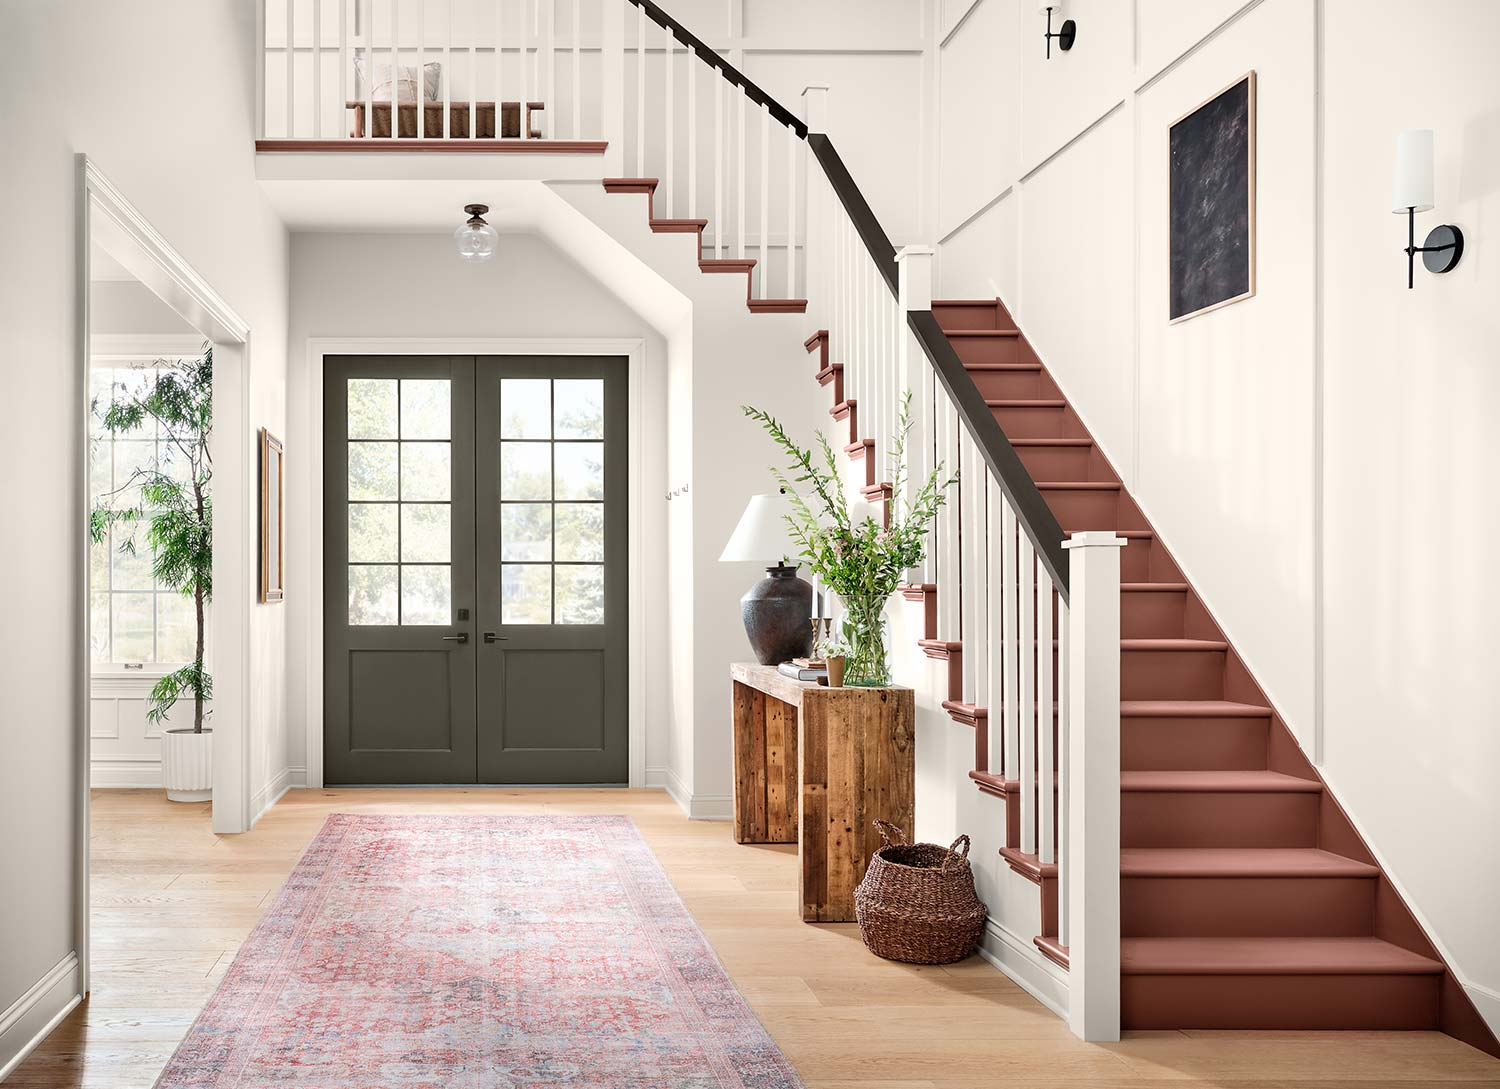 Entryway with stairs painted in Canyon Clay SW 6054.